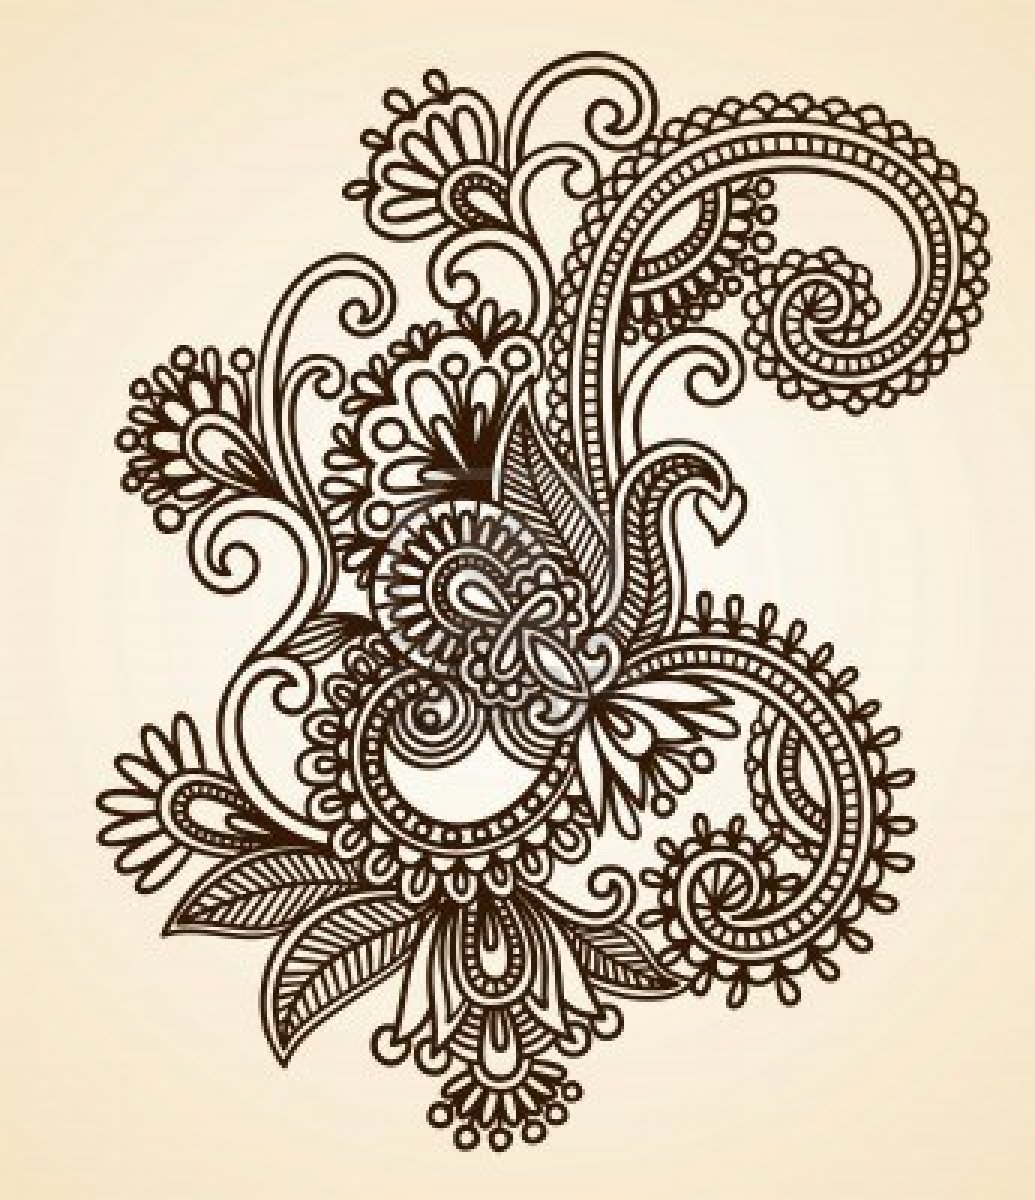 1035x1200 Dragonfly Henna Designs Abstract Henna Mehndi Tattoo Design